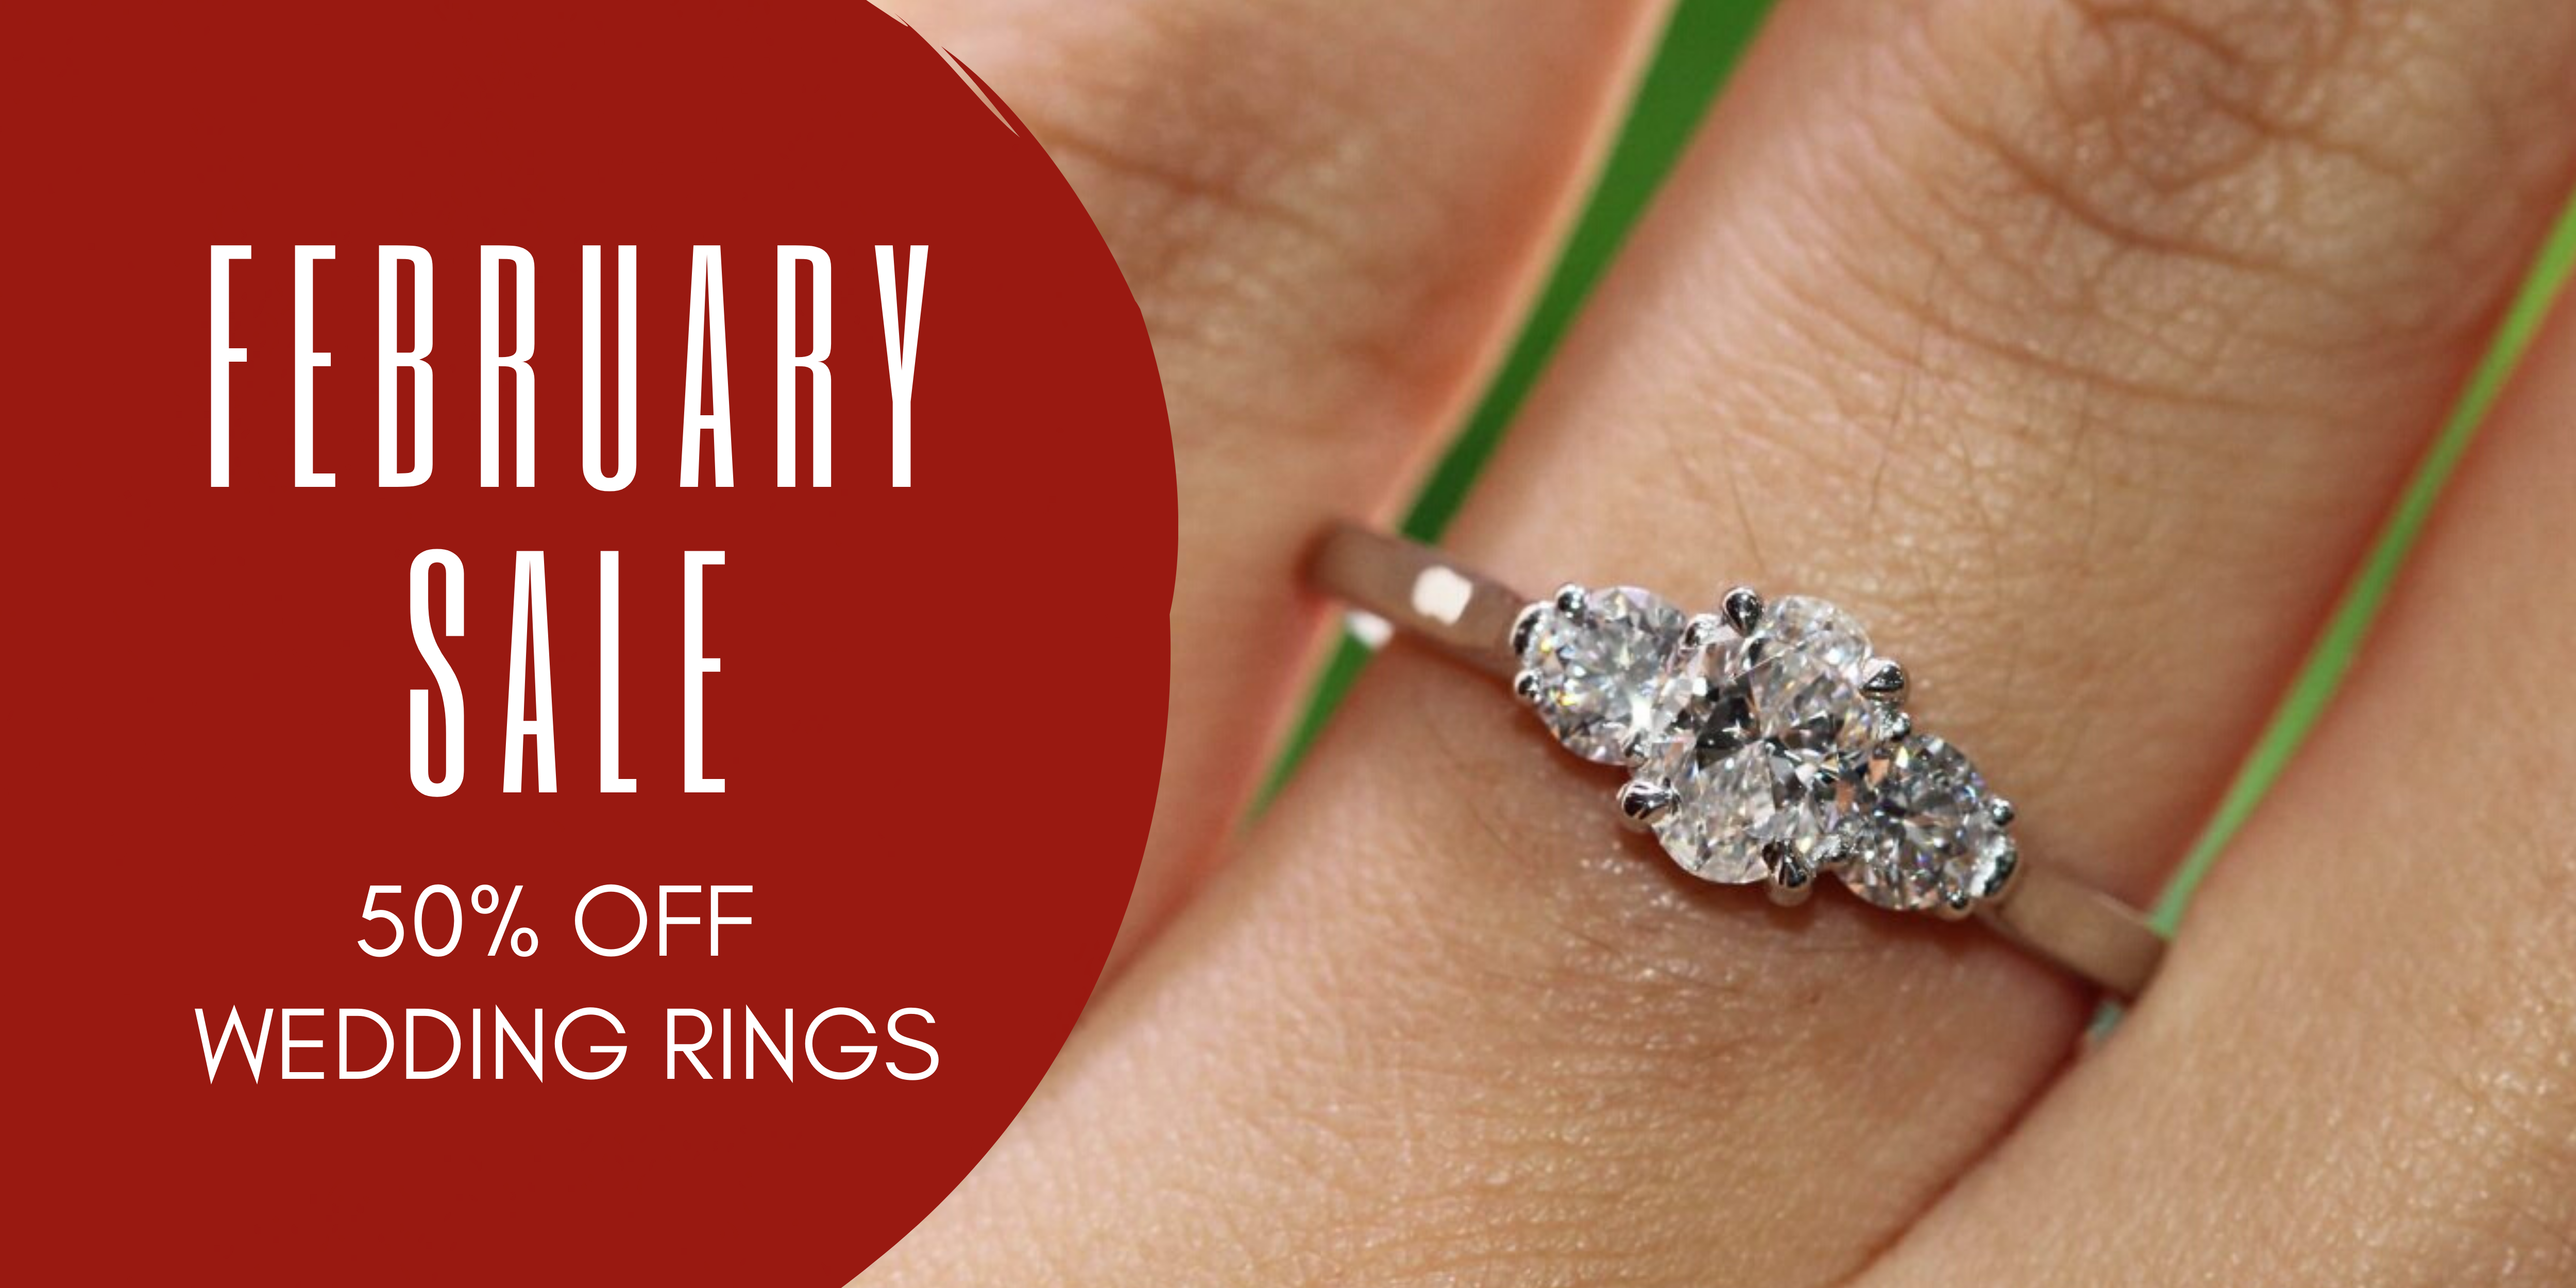 clayfield jewellery 50% off wedding rings